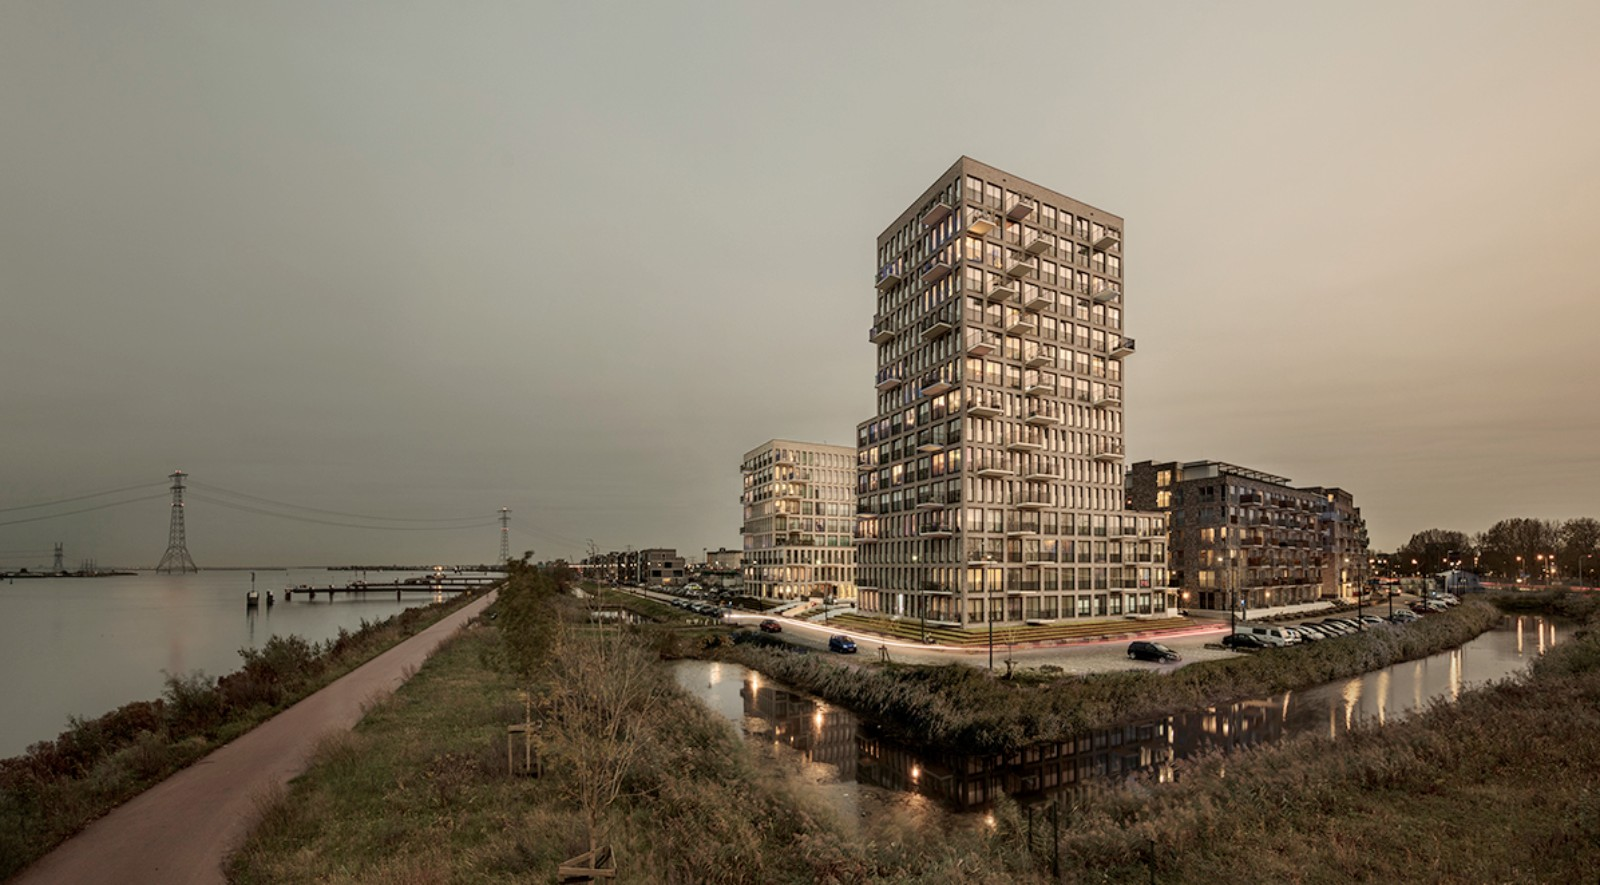 residential complex on Zeeburger Island